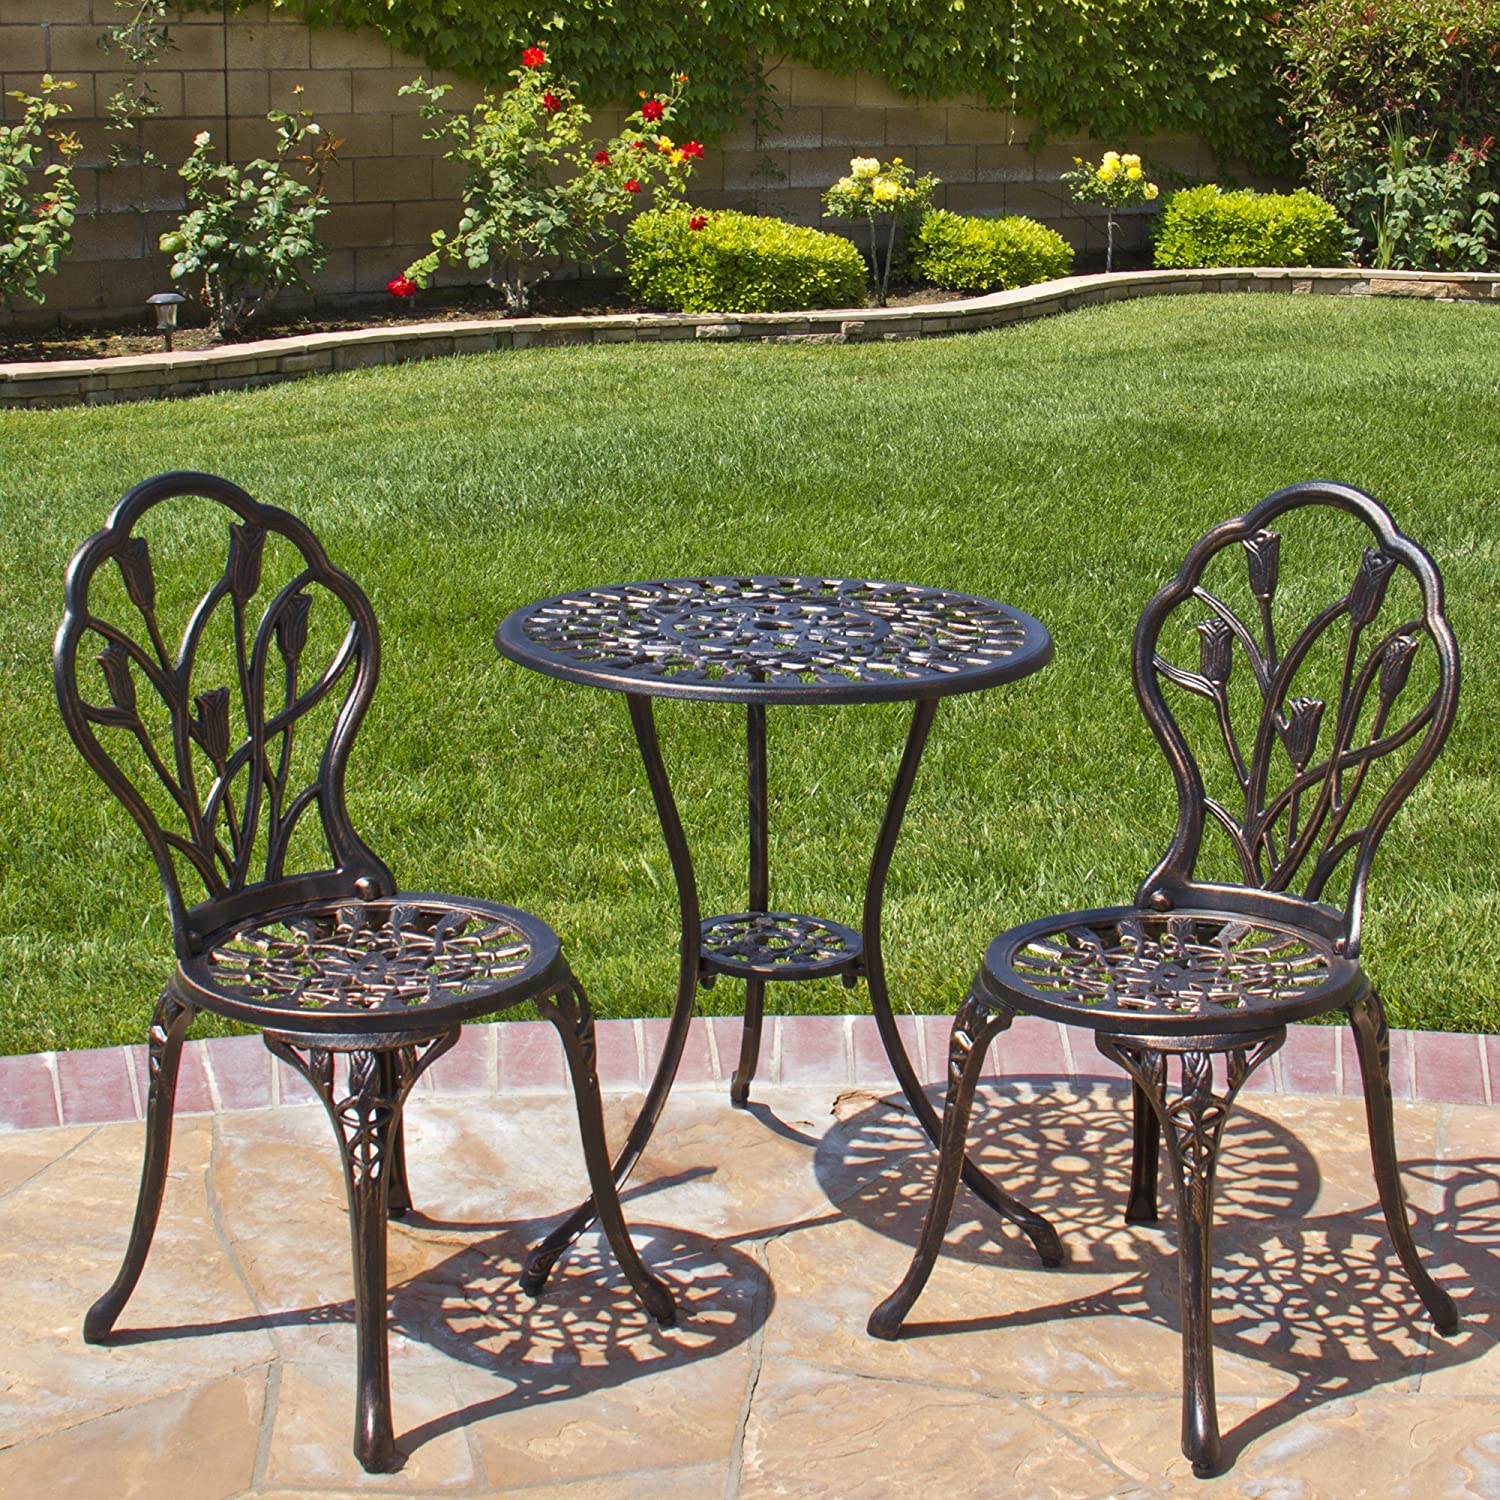 Amazon.com Best Choice Products Outdoor Patio Furniture Tulip Design Cast Aluminum 3 Piece Bistro Set in Antique Copper Garden u0026 Outdoor & Amazon.com: Best Choice Products Outdoor Patio Furniture Tulip ...